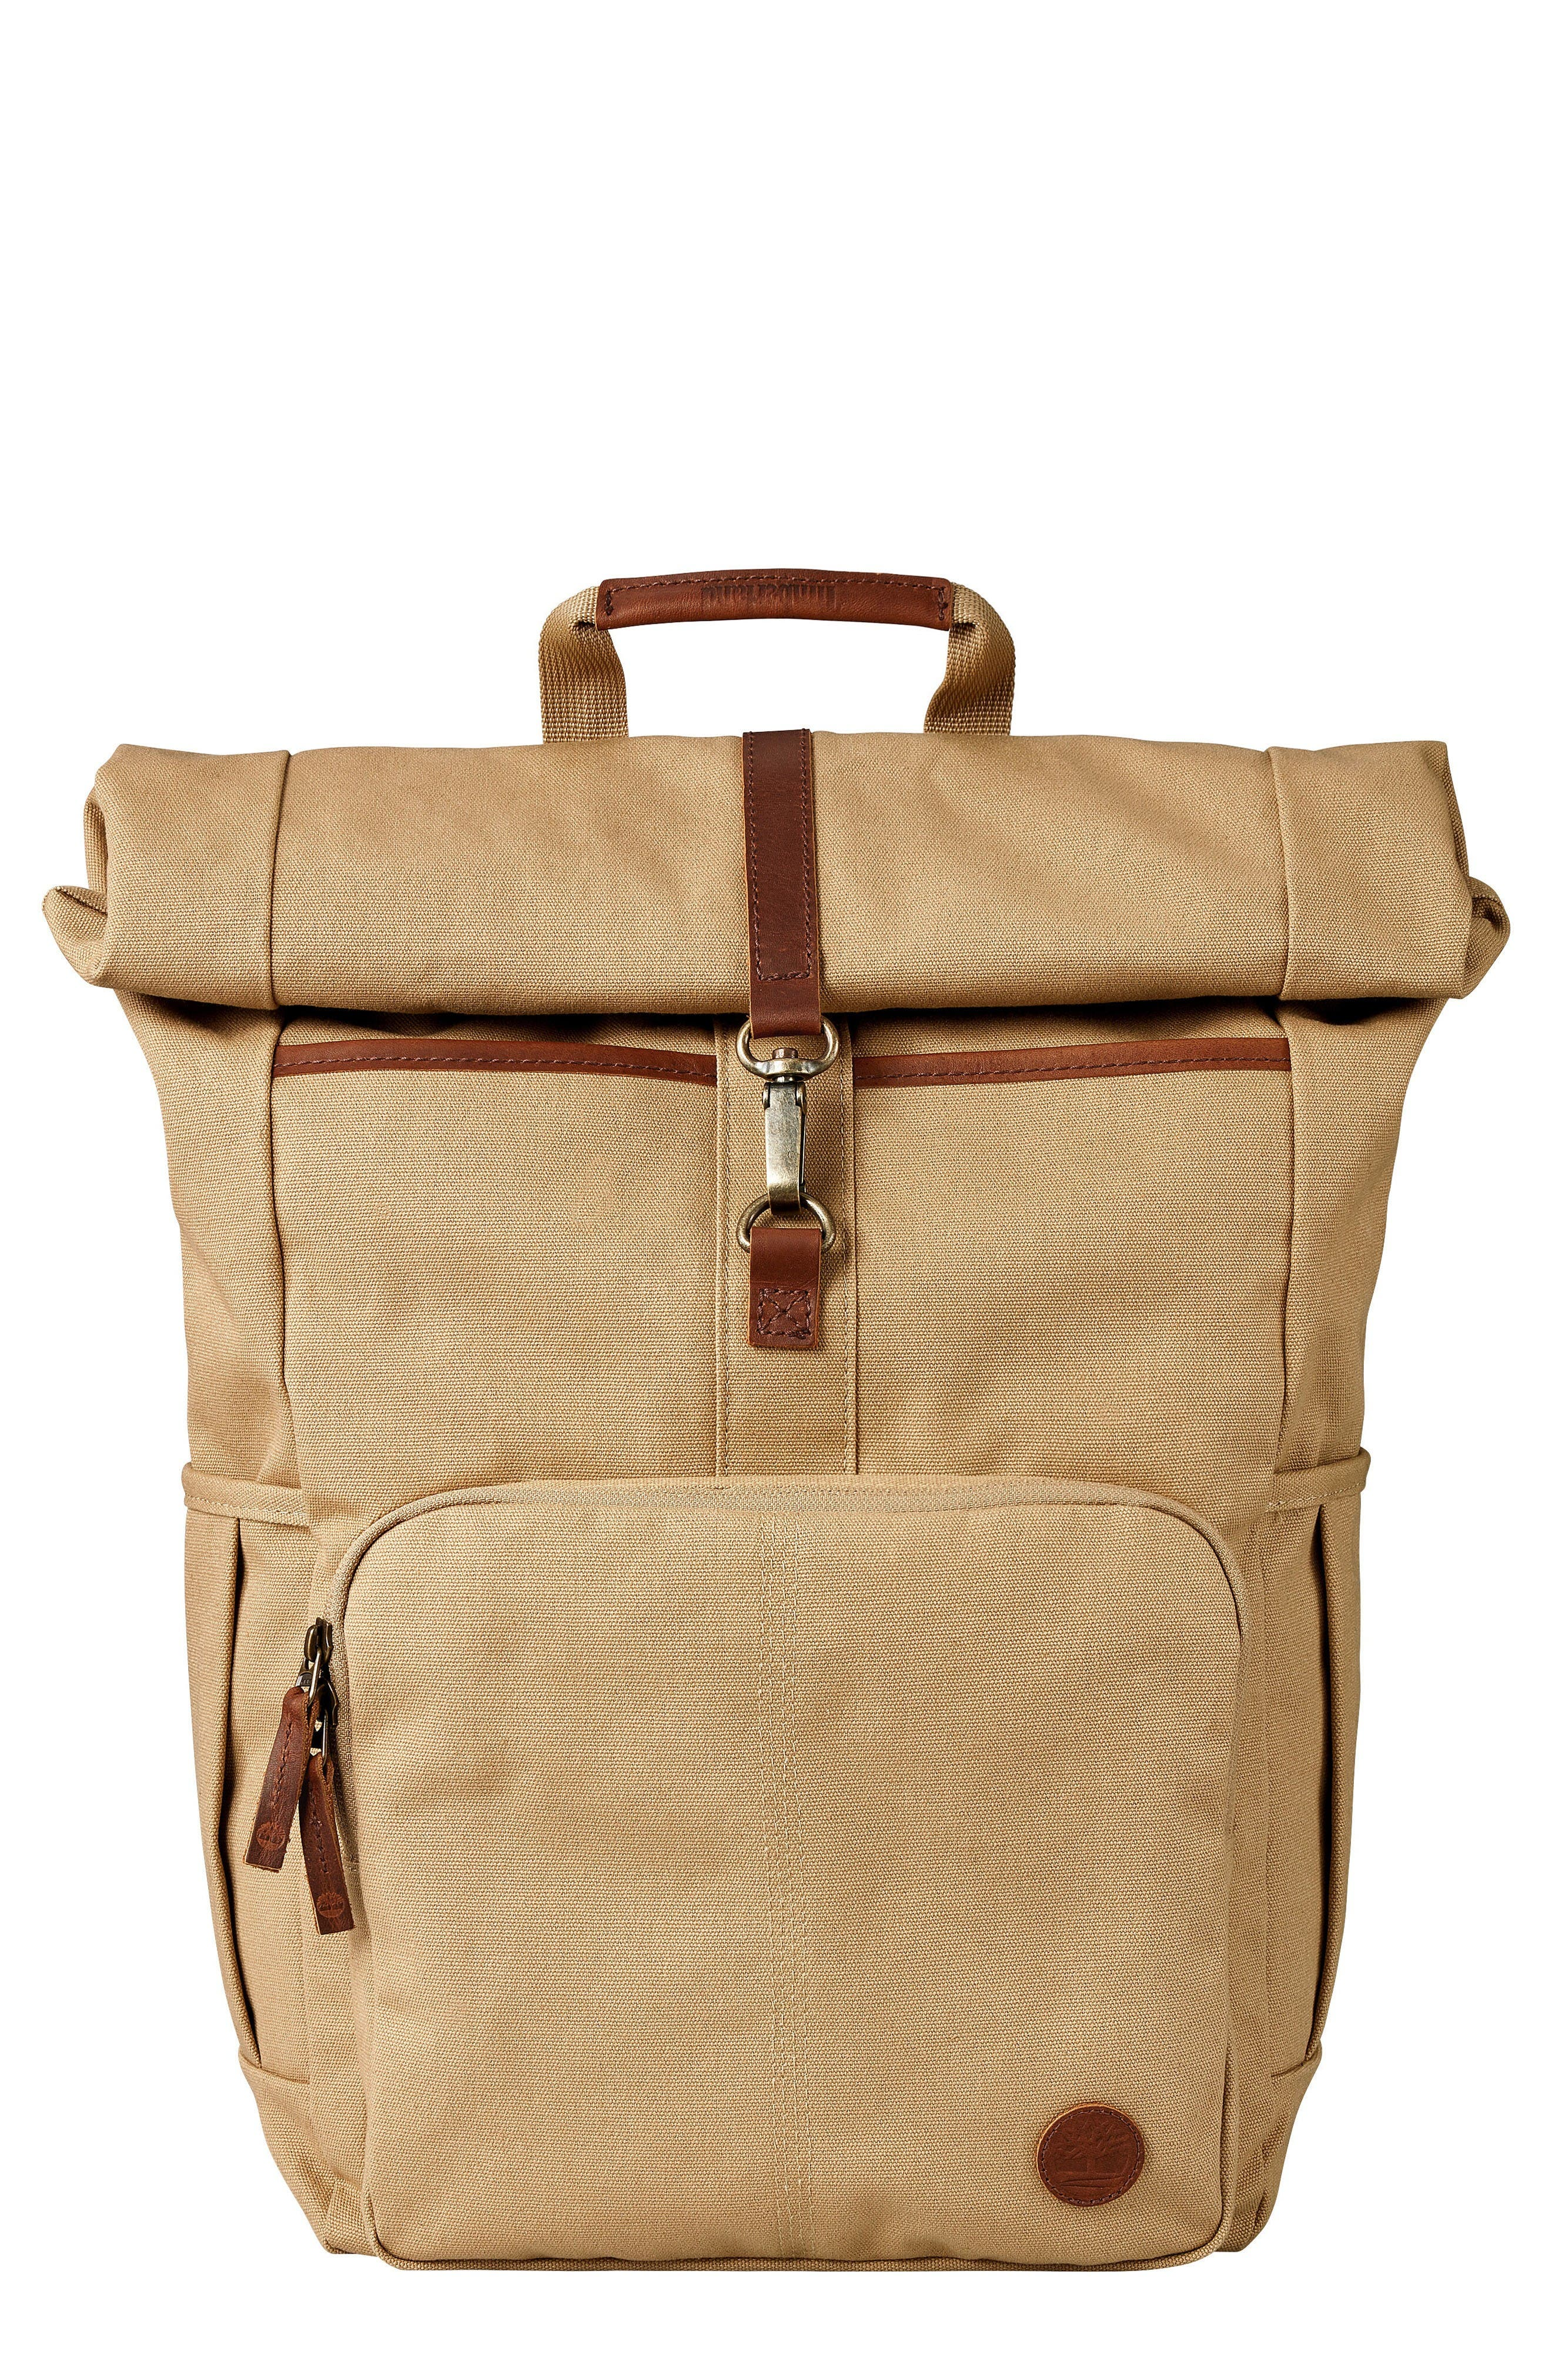 Walnut Hill Rolltop Backpack,                         Main,                         color, Kelp